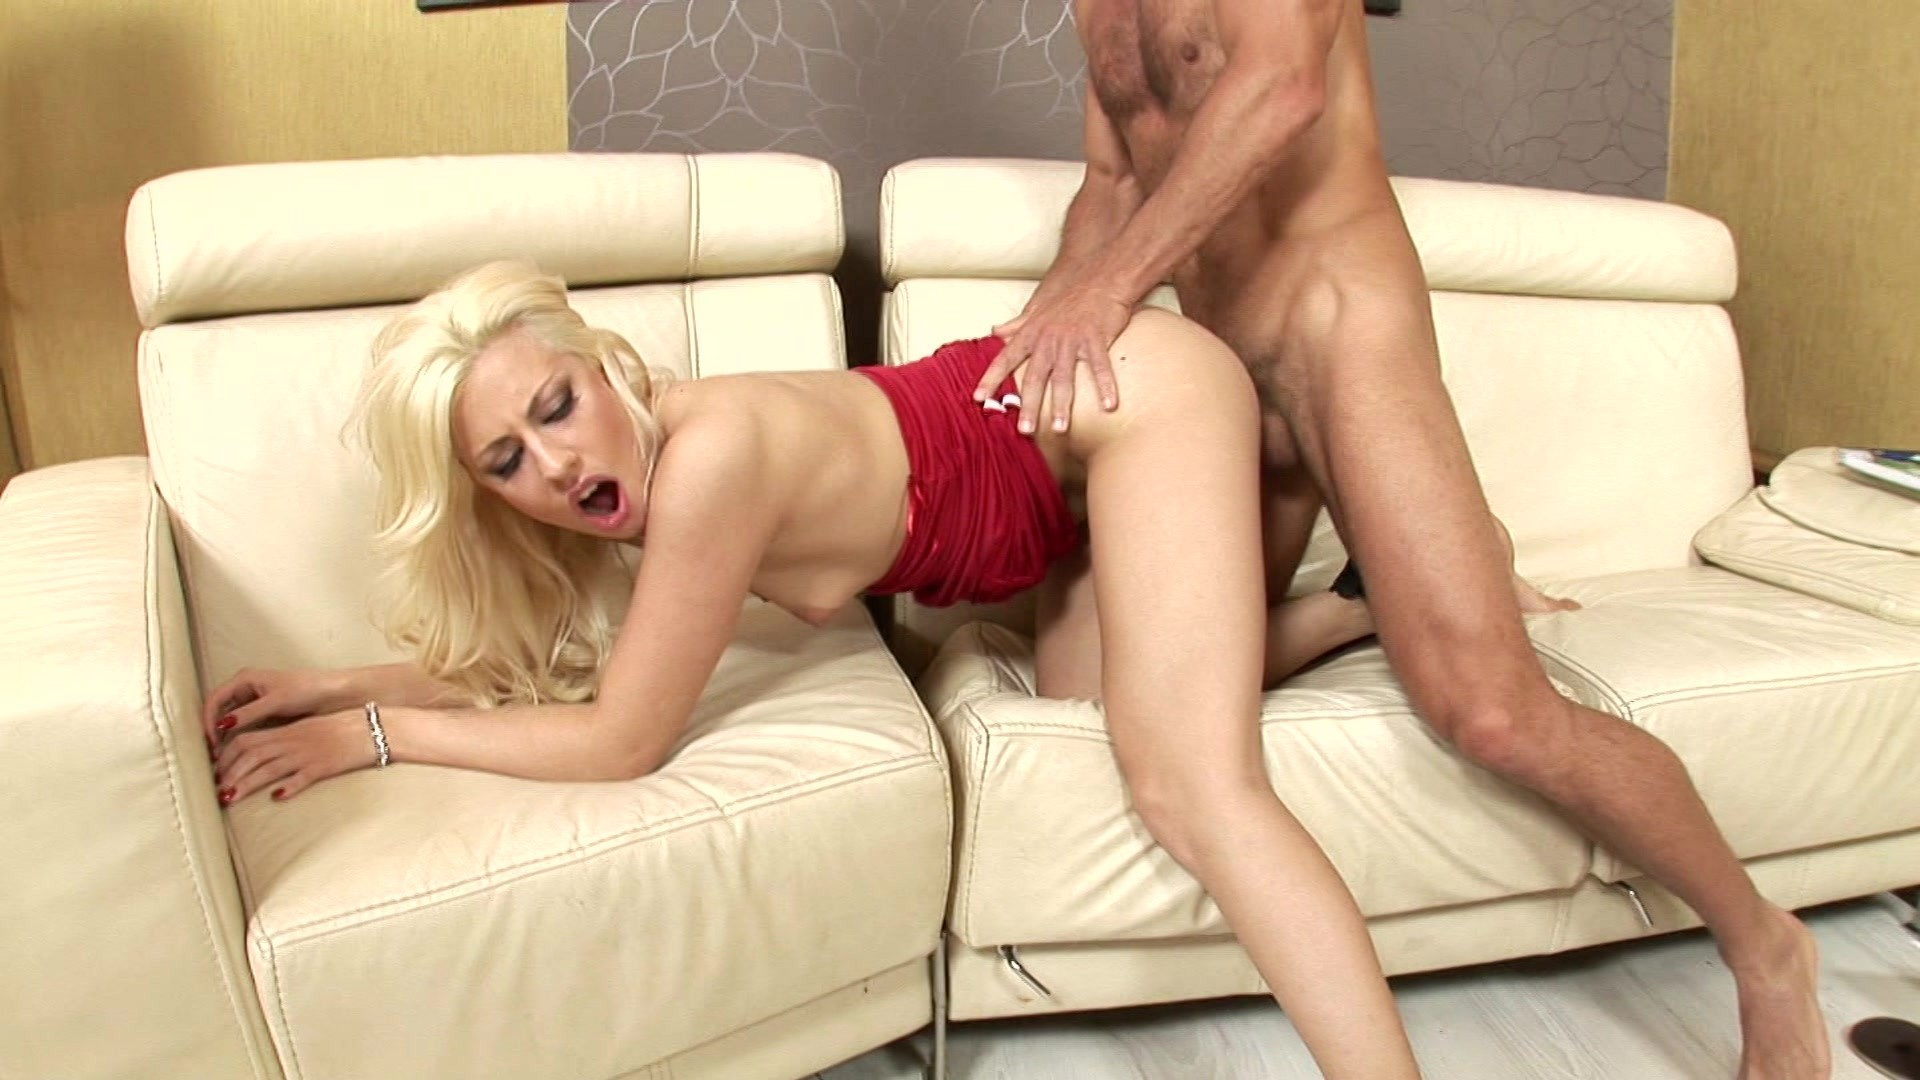 Jessie volt, hot french girl fucked hard by machines in her pussy and ass